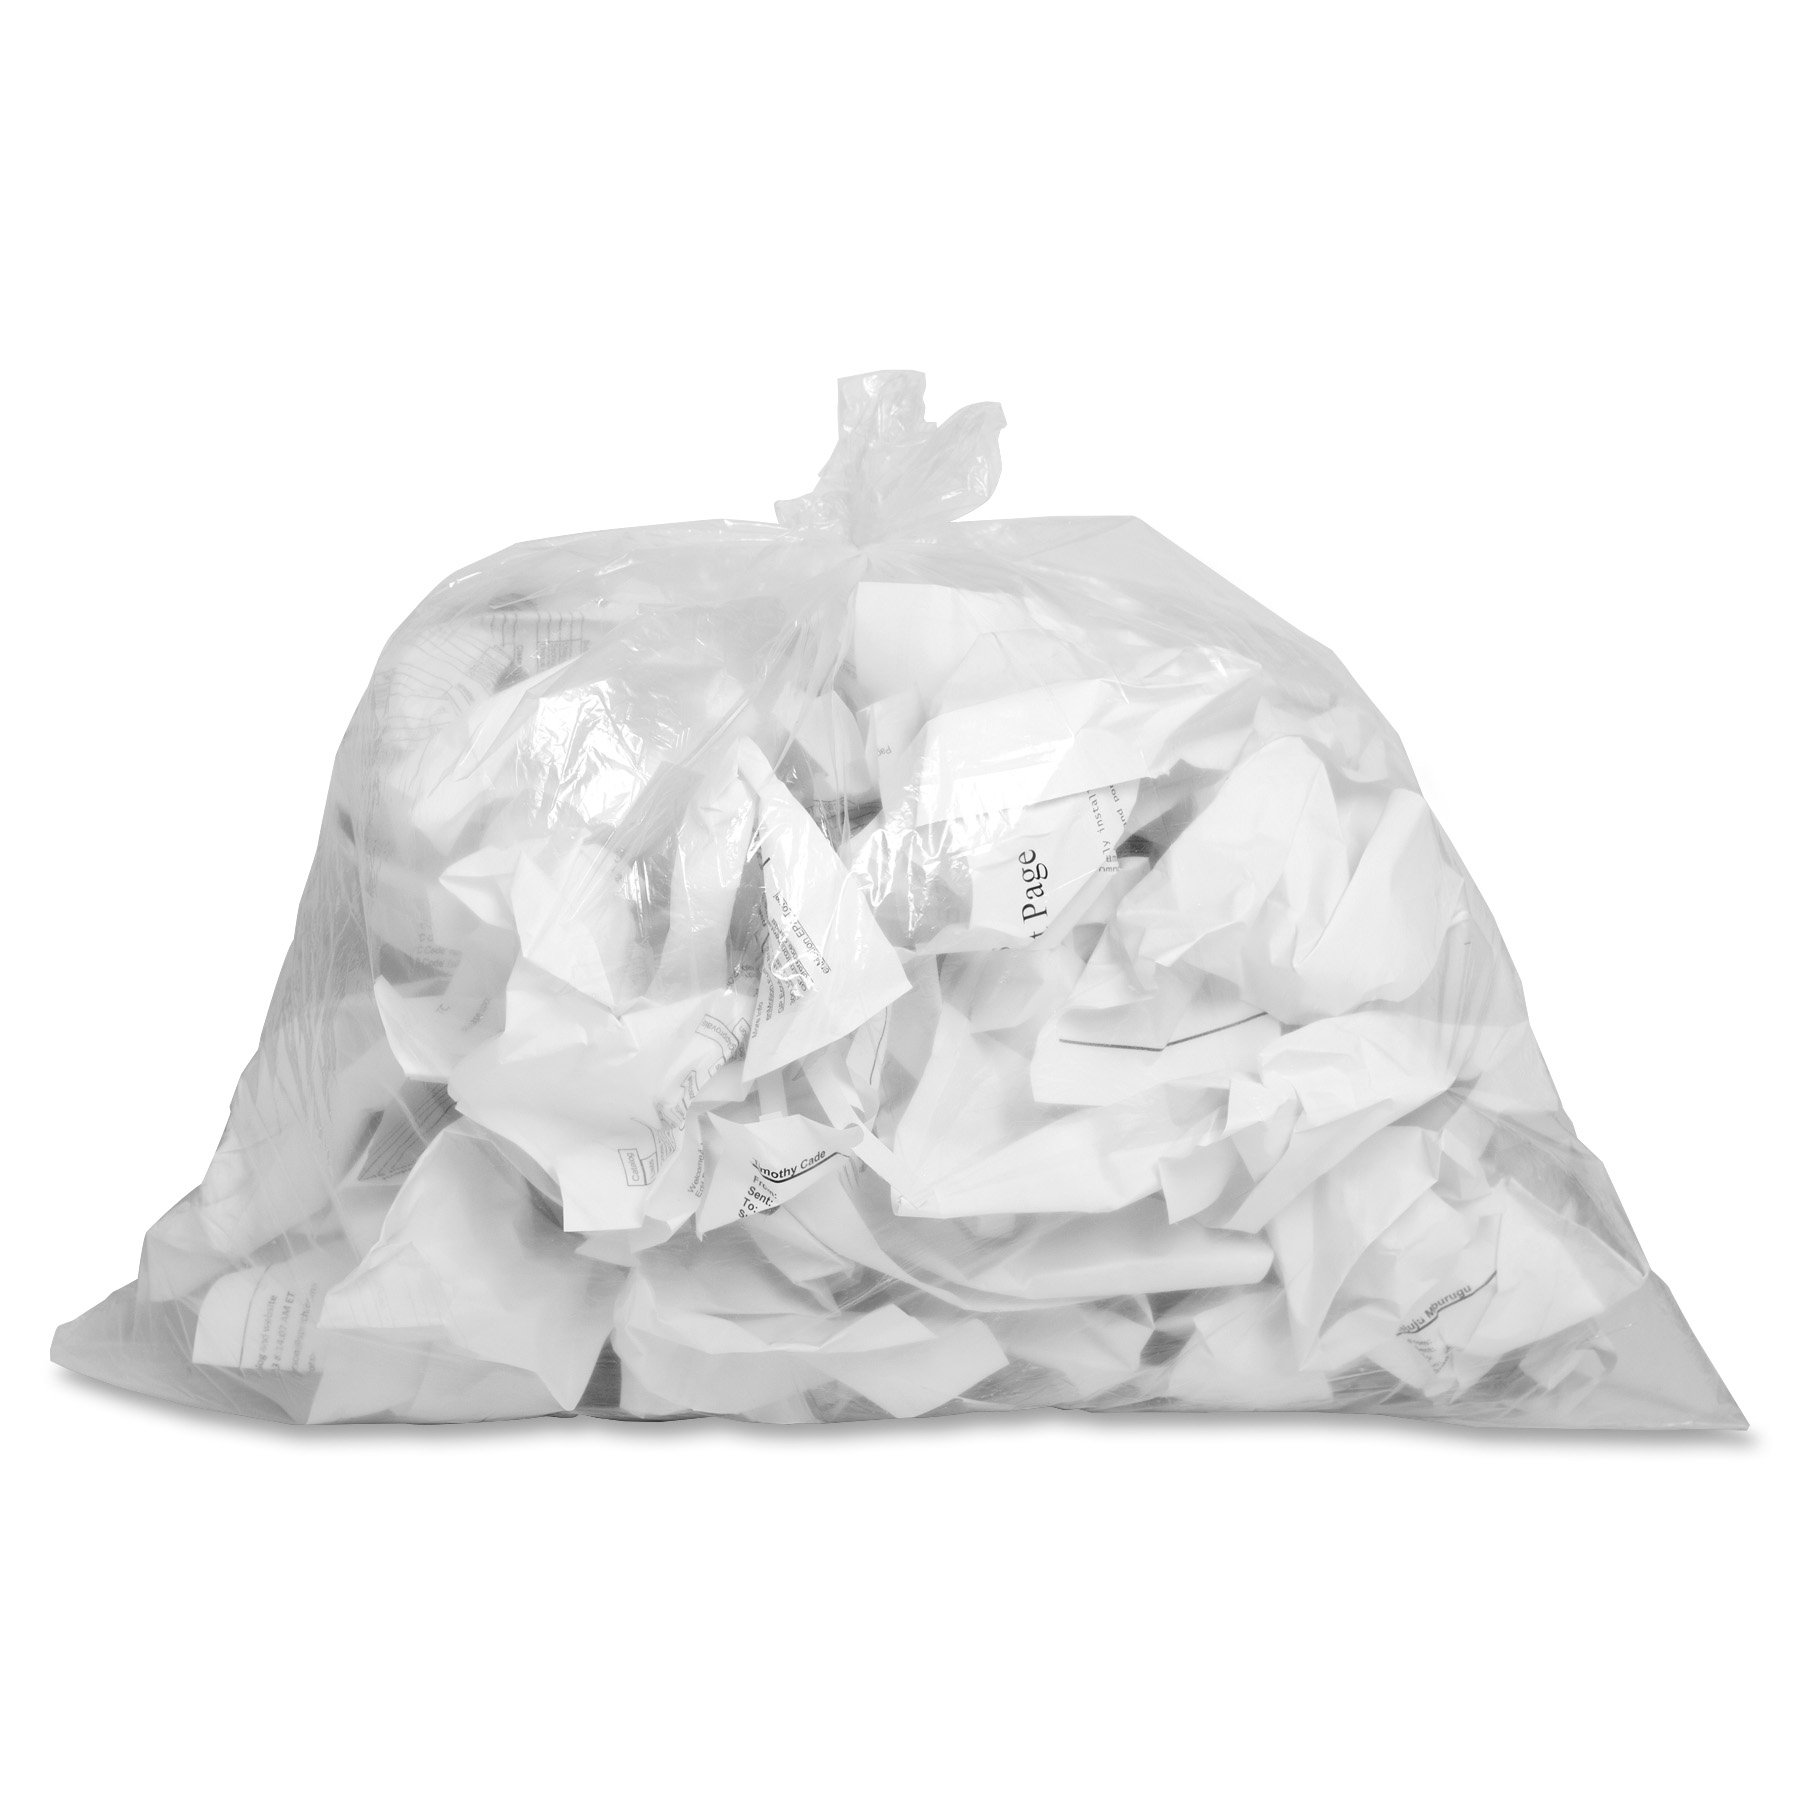 Genuine Joe GJO01010 Low-Density Trash Can Liner, 10 gallon Capacity, 24'' Length x 23'' Width x 0.60 mil Thickness, Clear (Box of 500)